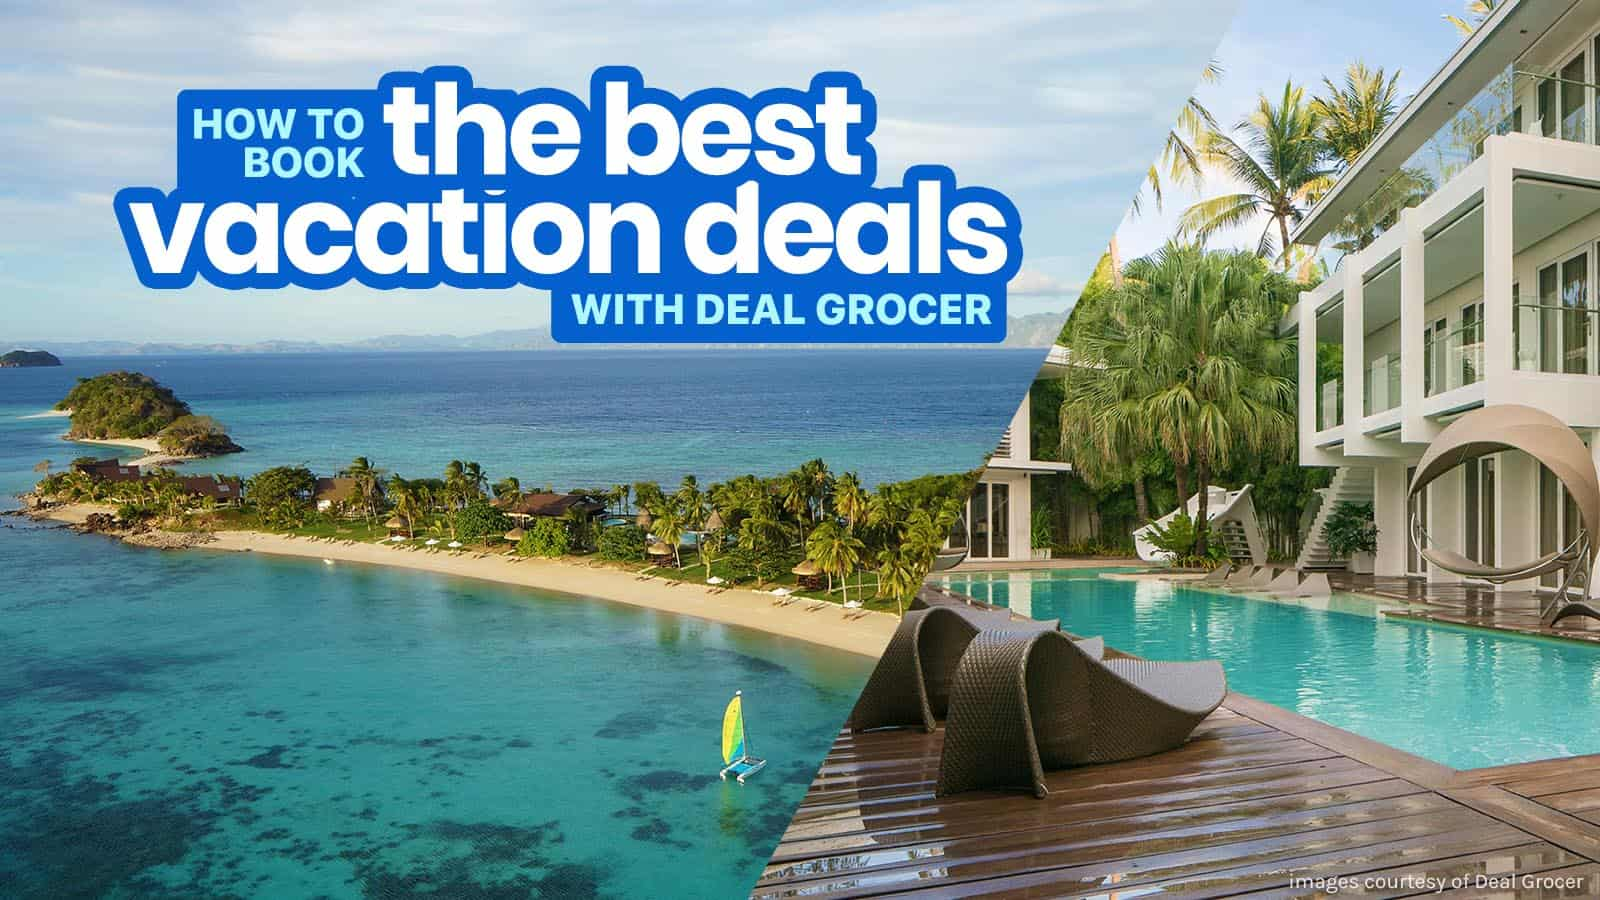 How to Book the BEST VACATION DEALS with Deal Grocer  The